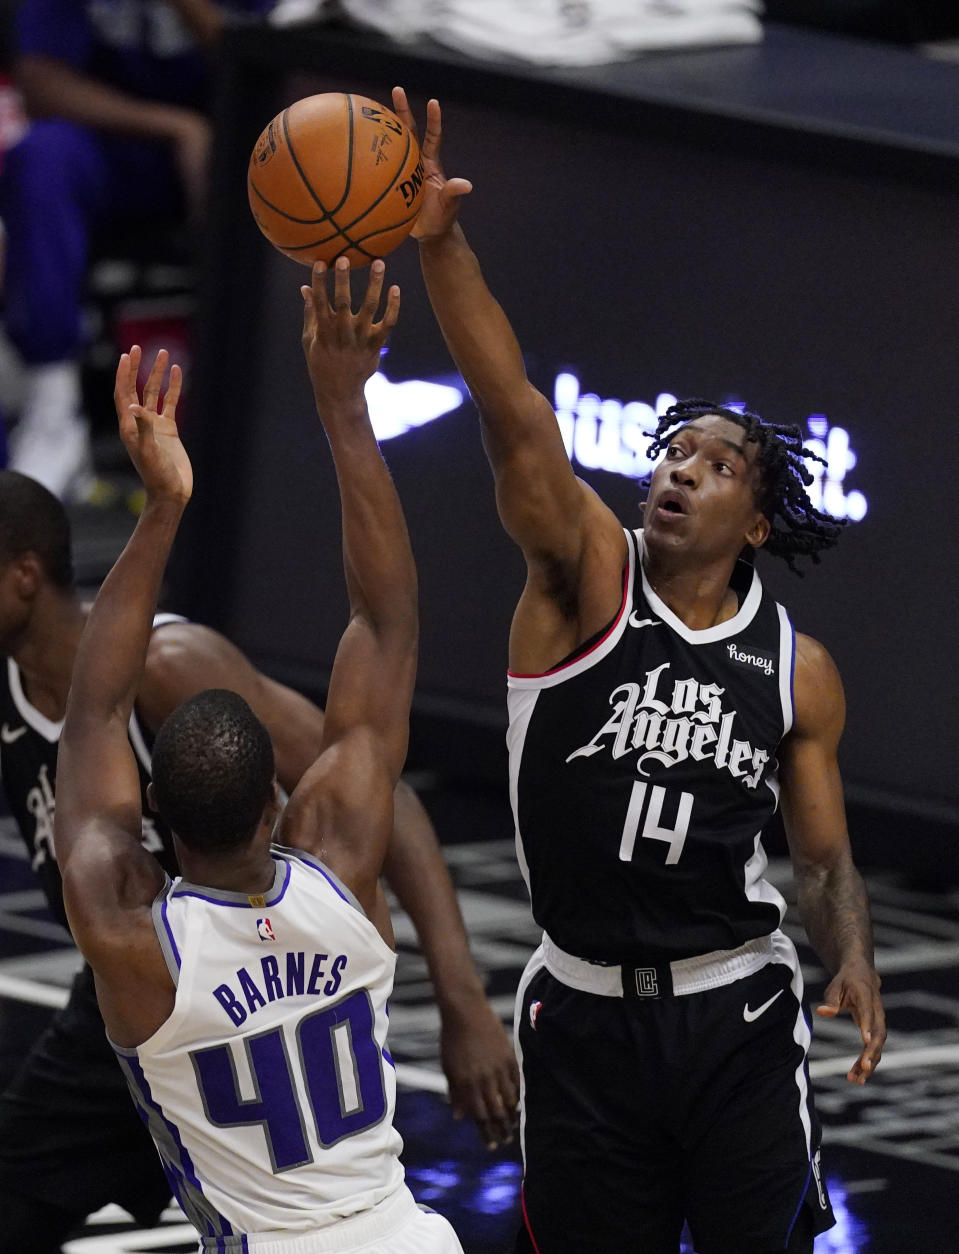 Sacramento Kings forward Harrison Barnes, left, shoots as Los Angeles Clippers guard Terance Mann defends during the first half of an NBA basketball game Sunday, Feb. 7, 2021, in Los Angeles. (AP Photo/Mark J. Terrill)